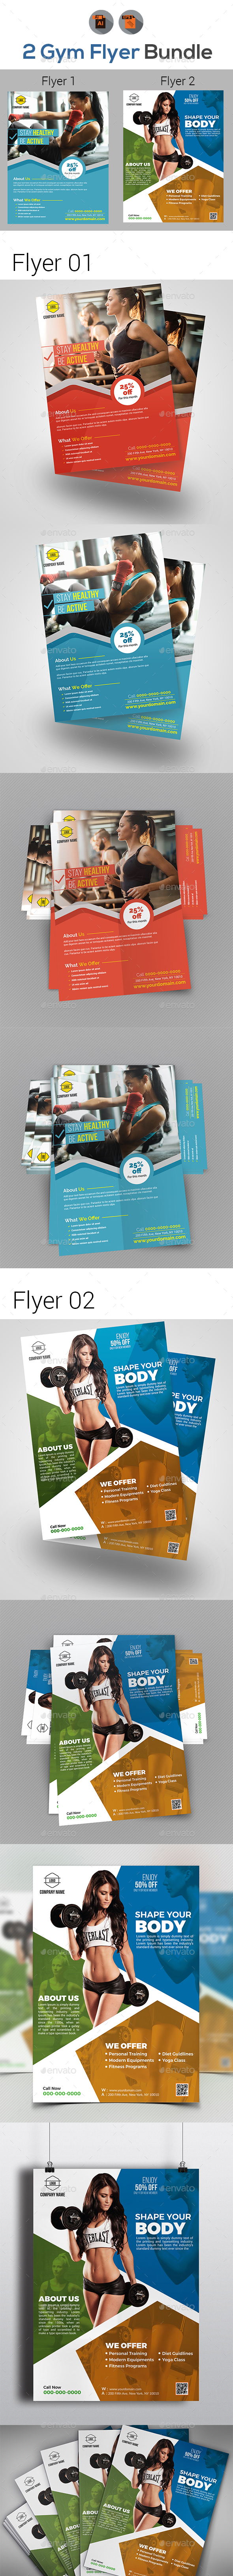 Fitness Flyers Template - Flyers Print Templates